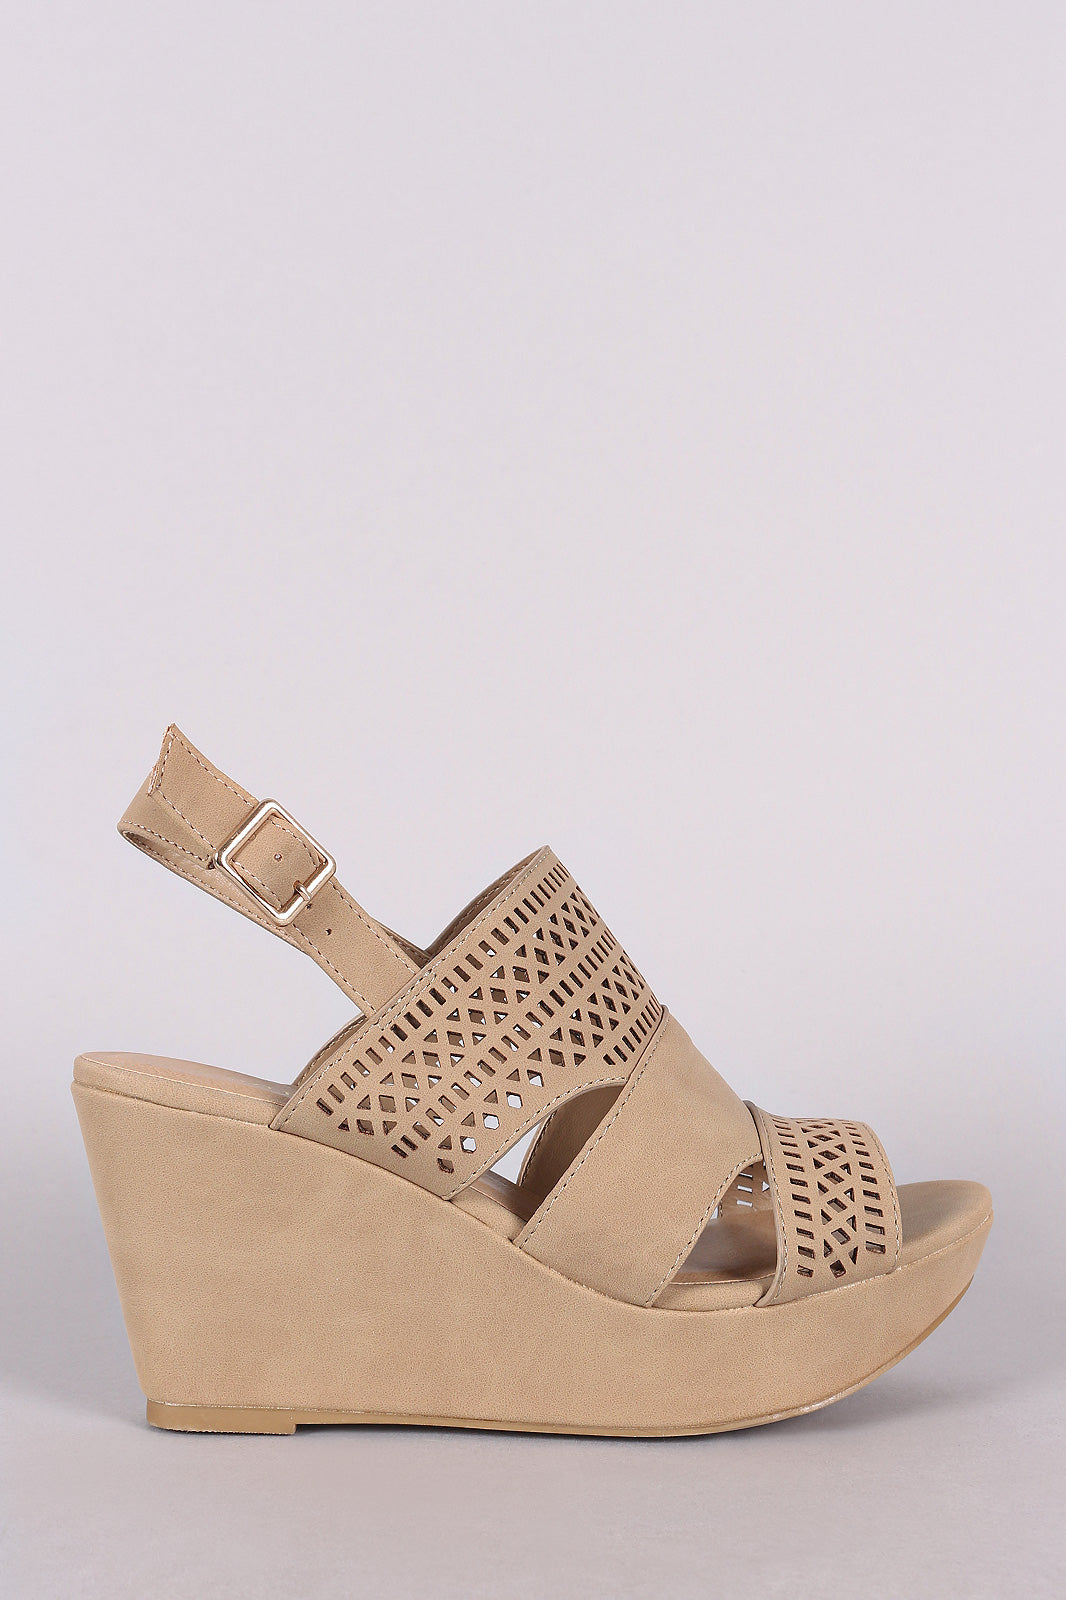 Perforated Nubuck Slingback Platform Wedge